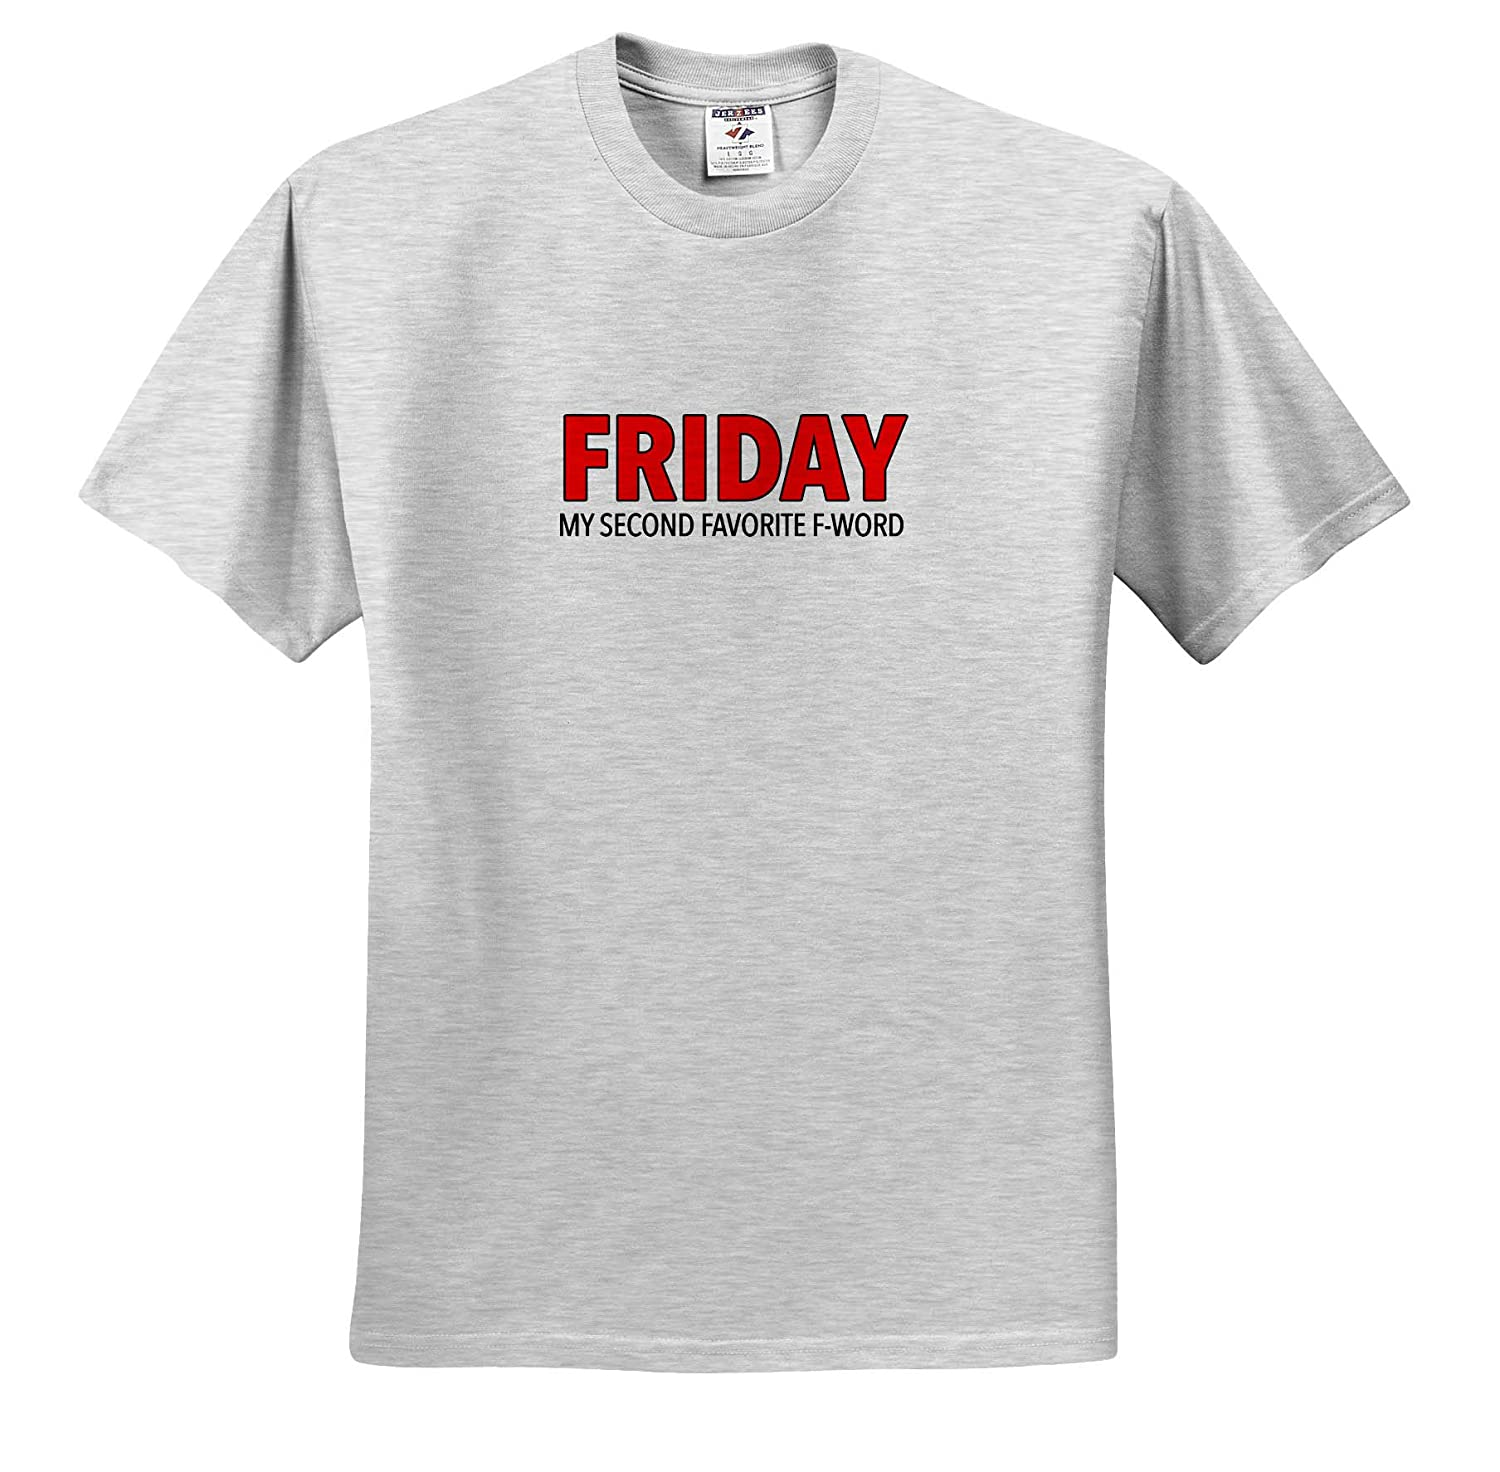 3dRose EvaDane ts/_321009 Friday My Second Favorite F Word Red Adult T-Shirt XL Funny Sayings